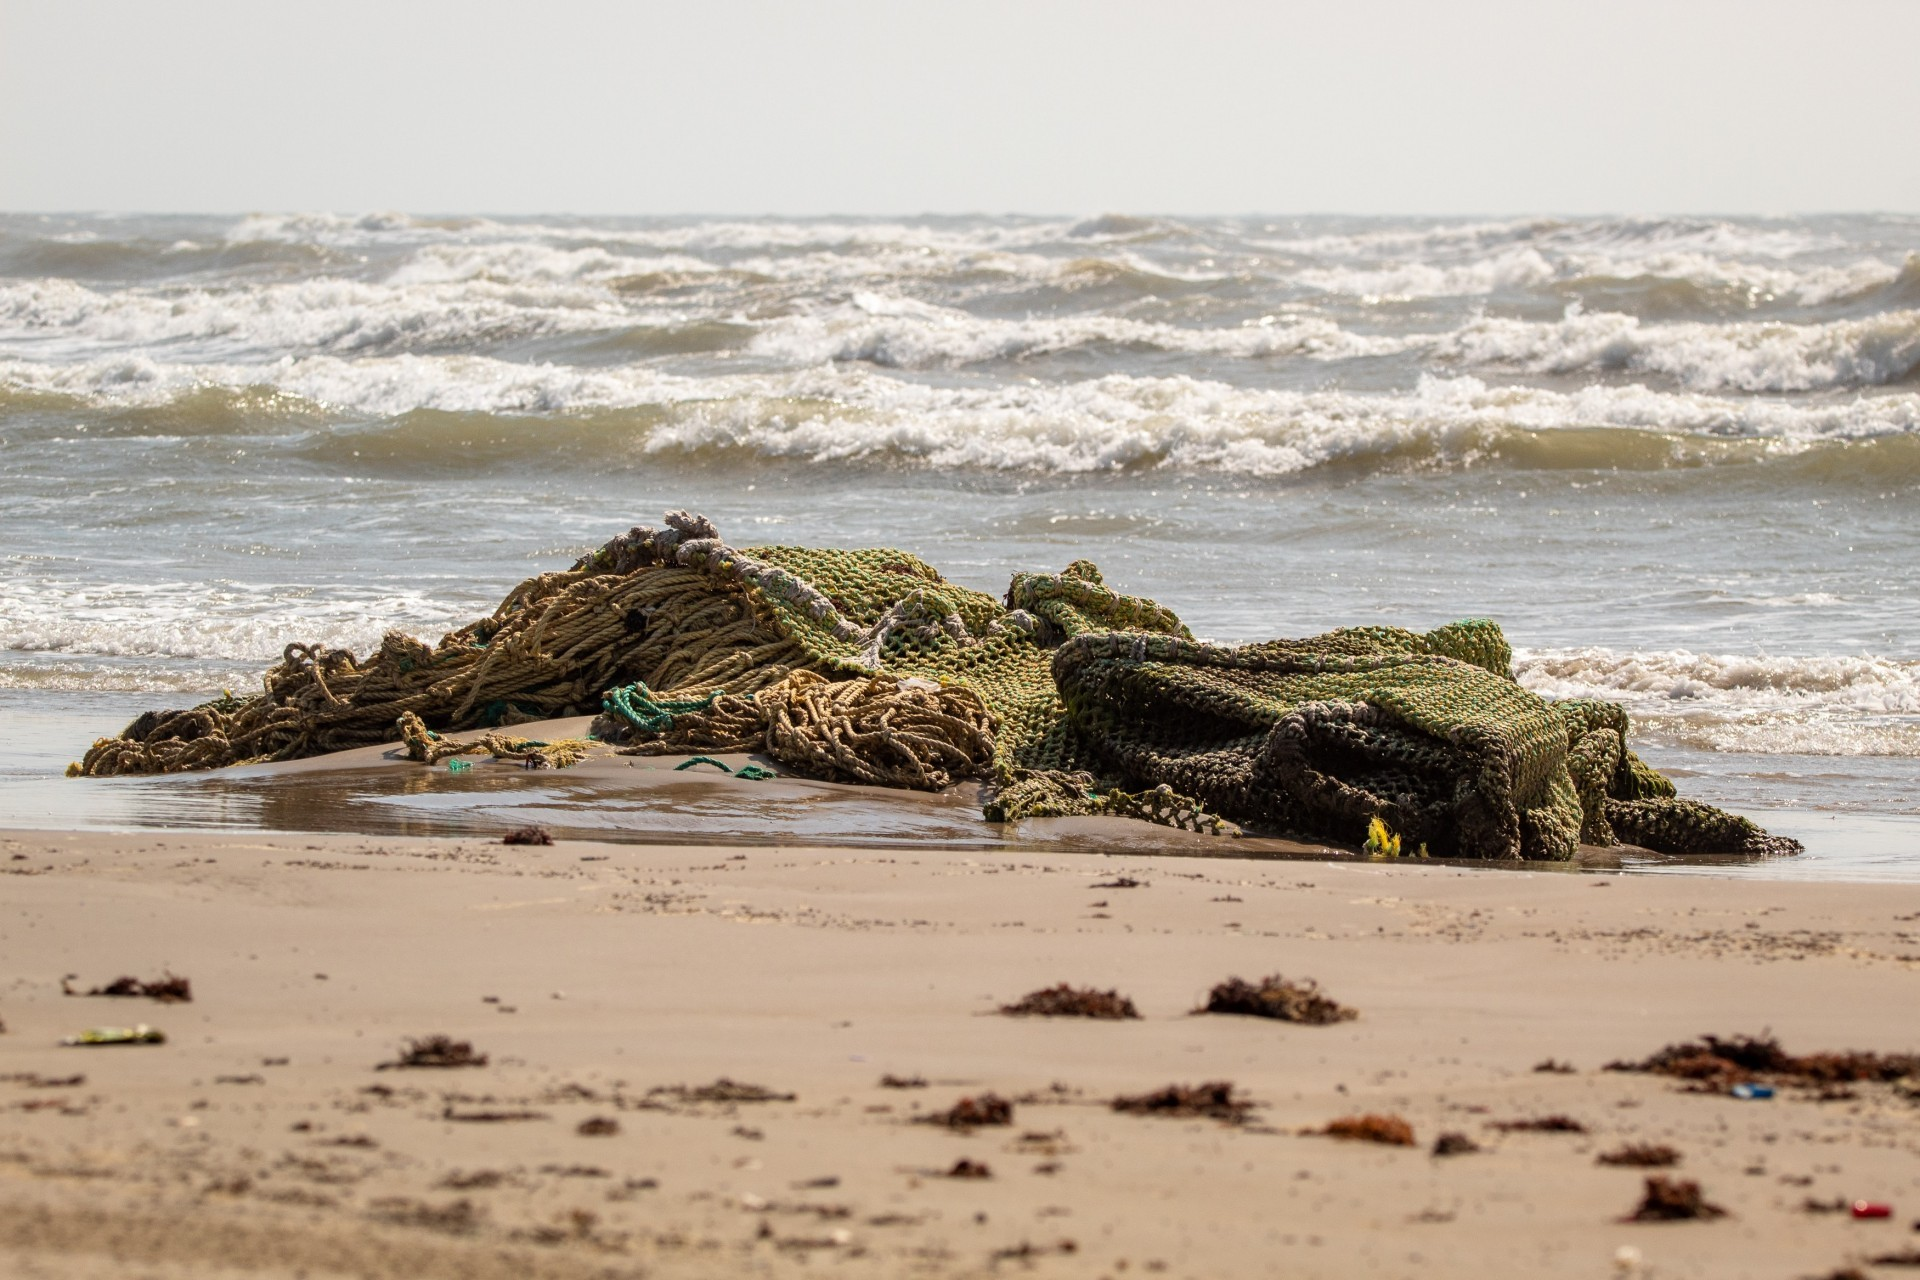 A huge pile of discarded fishing nets washed up on a beach